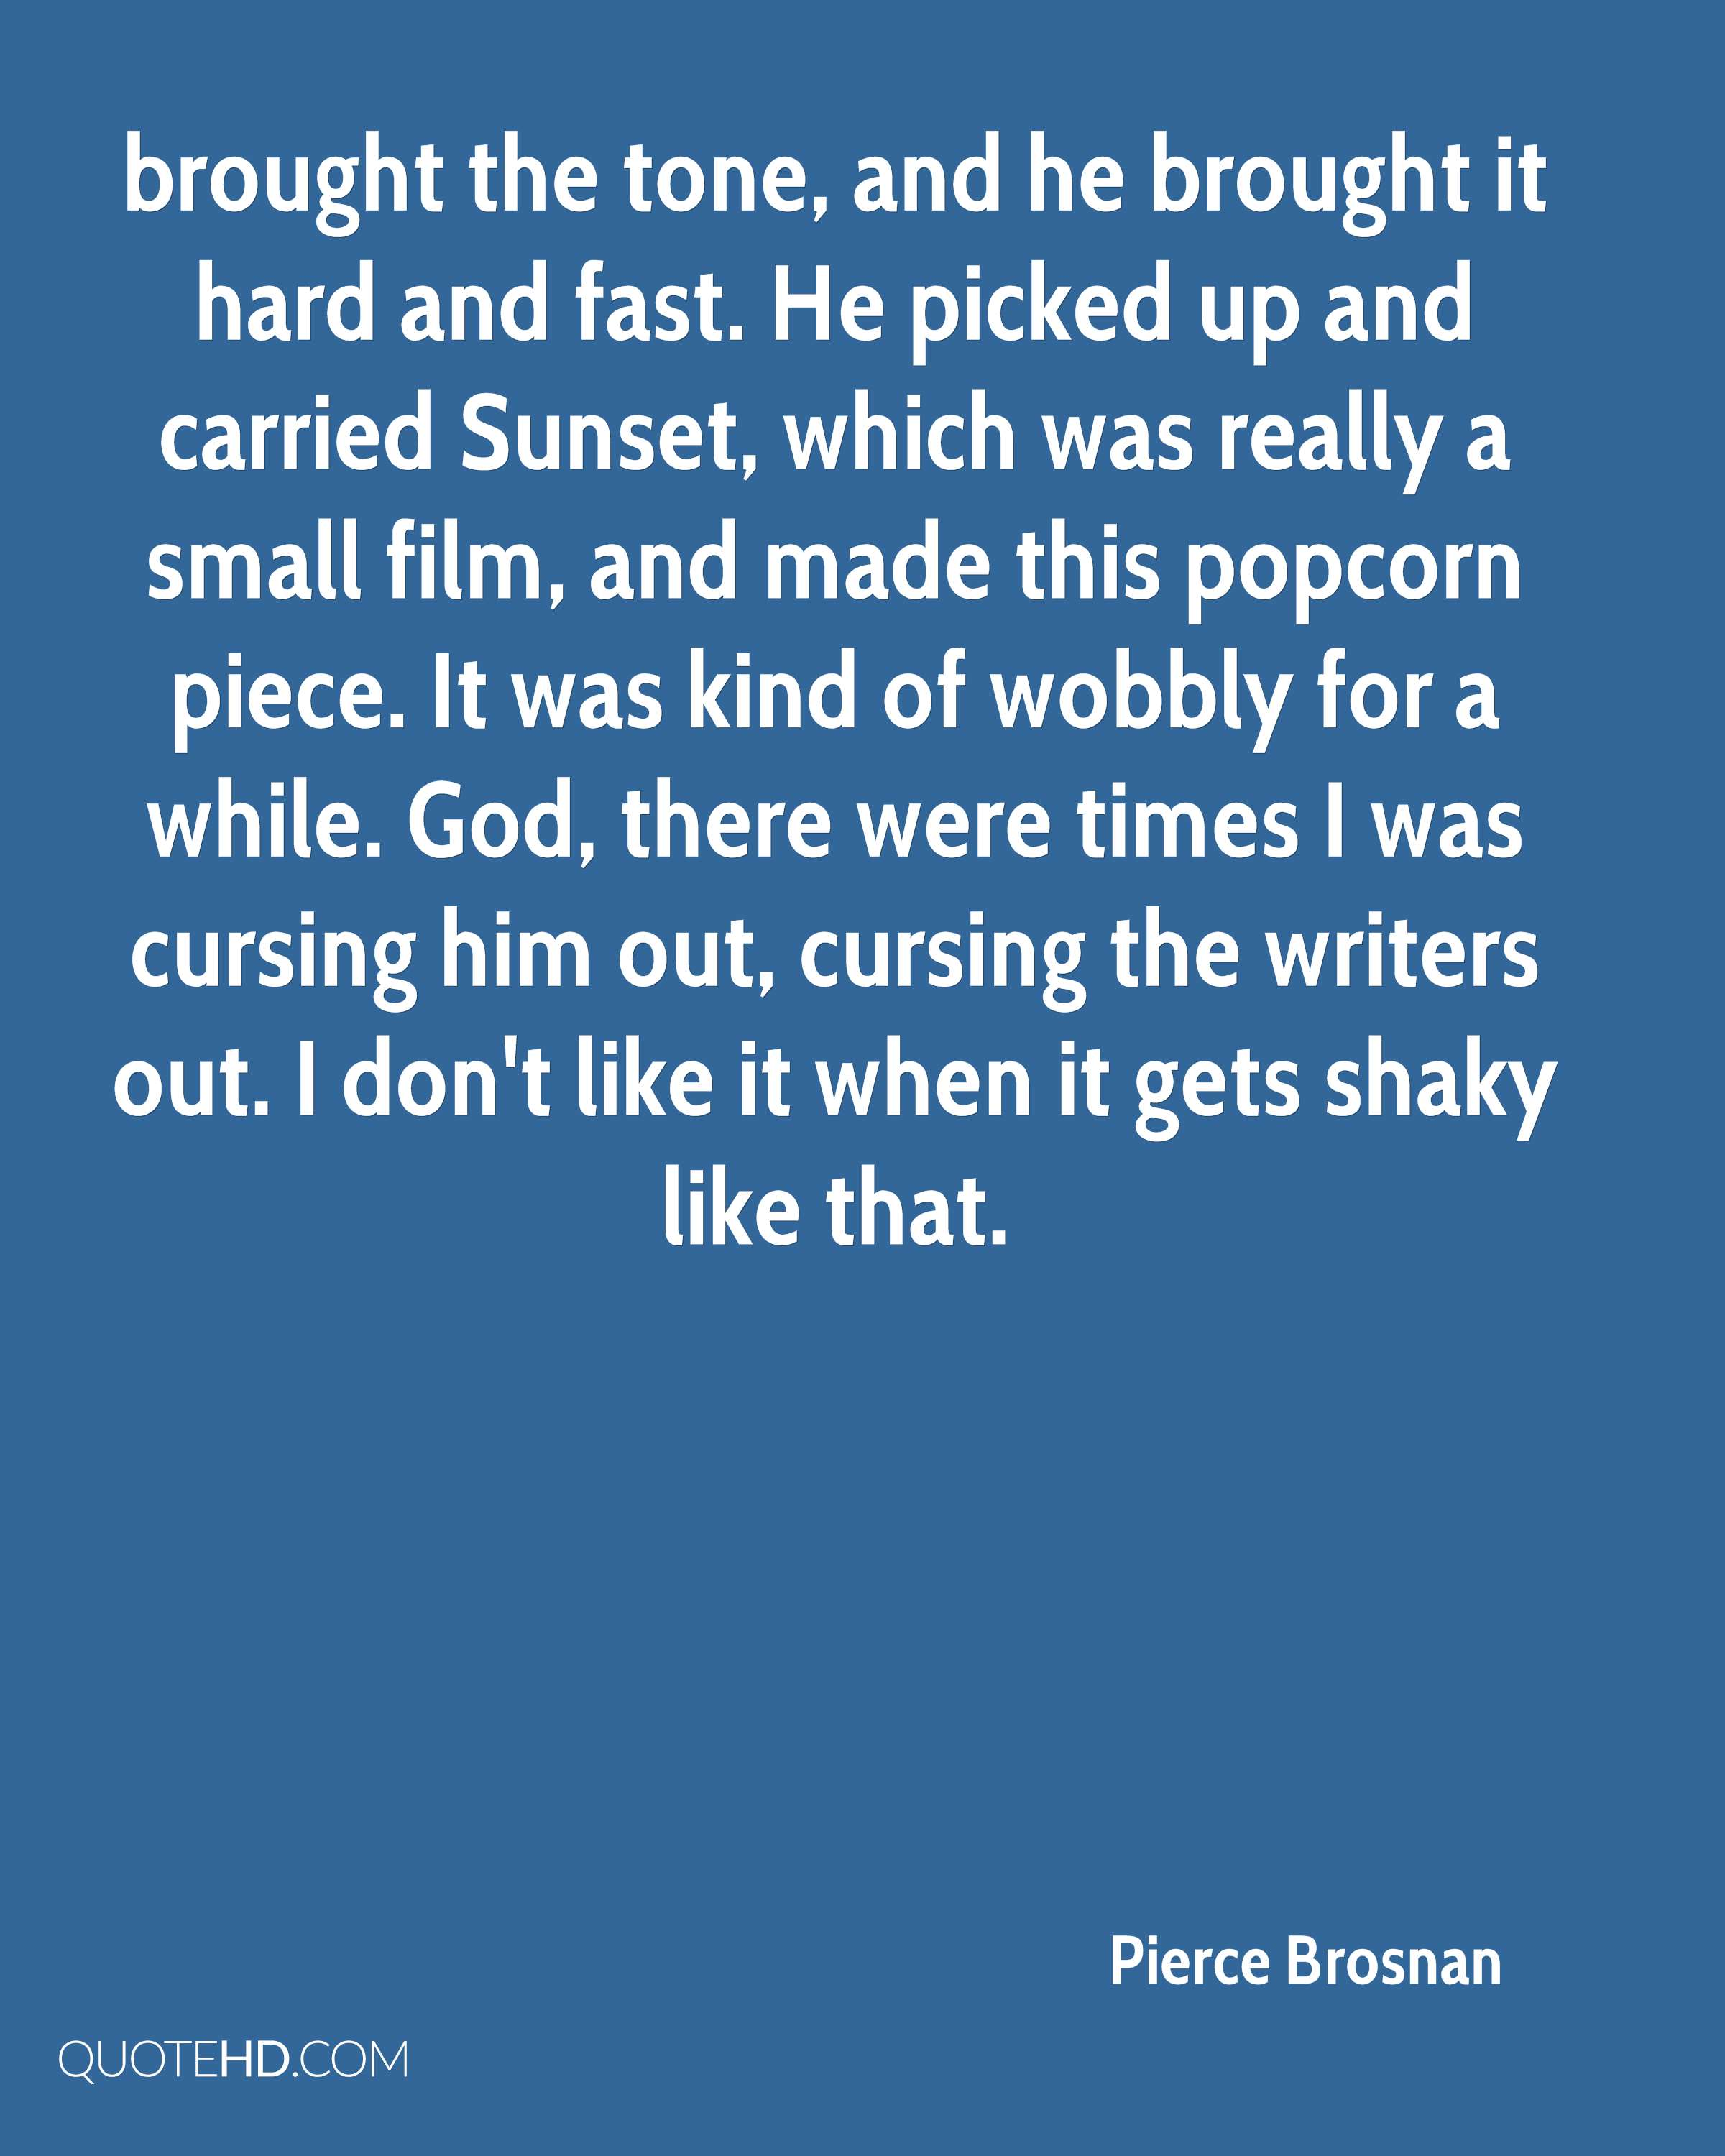 brought the tone, and he brought it hard and fast. He picked up and carried Sunset, which was really a small film, and made this popcorn piece. It was kind of wobbly for a while. God, there were times I was cursing him out, cursing the writers out. I don't like it when it gets shaky like that.